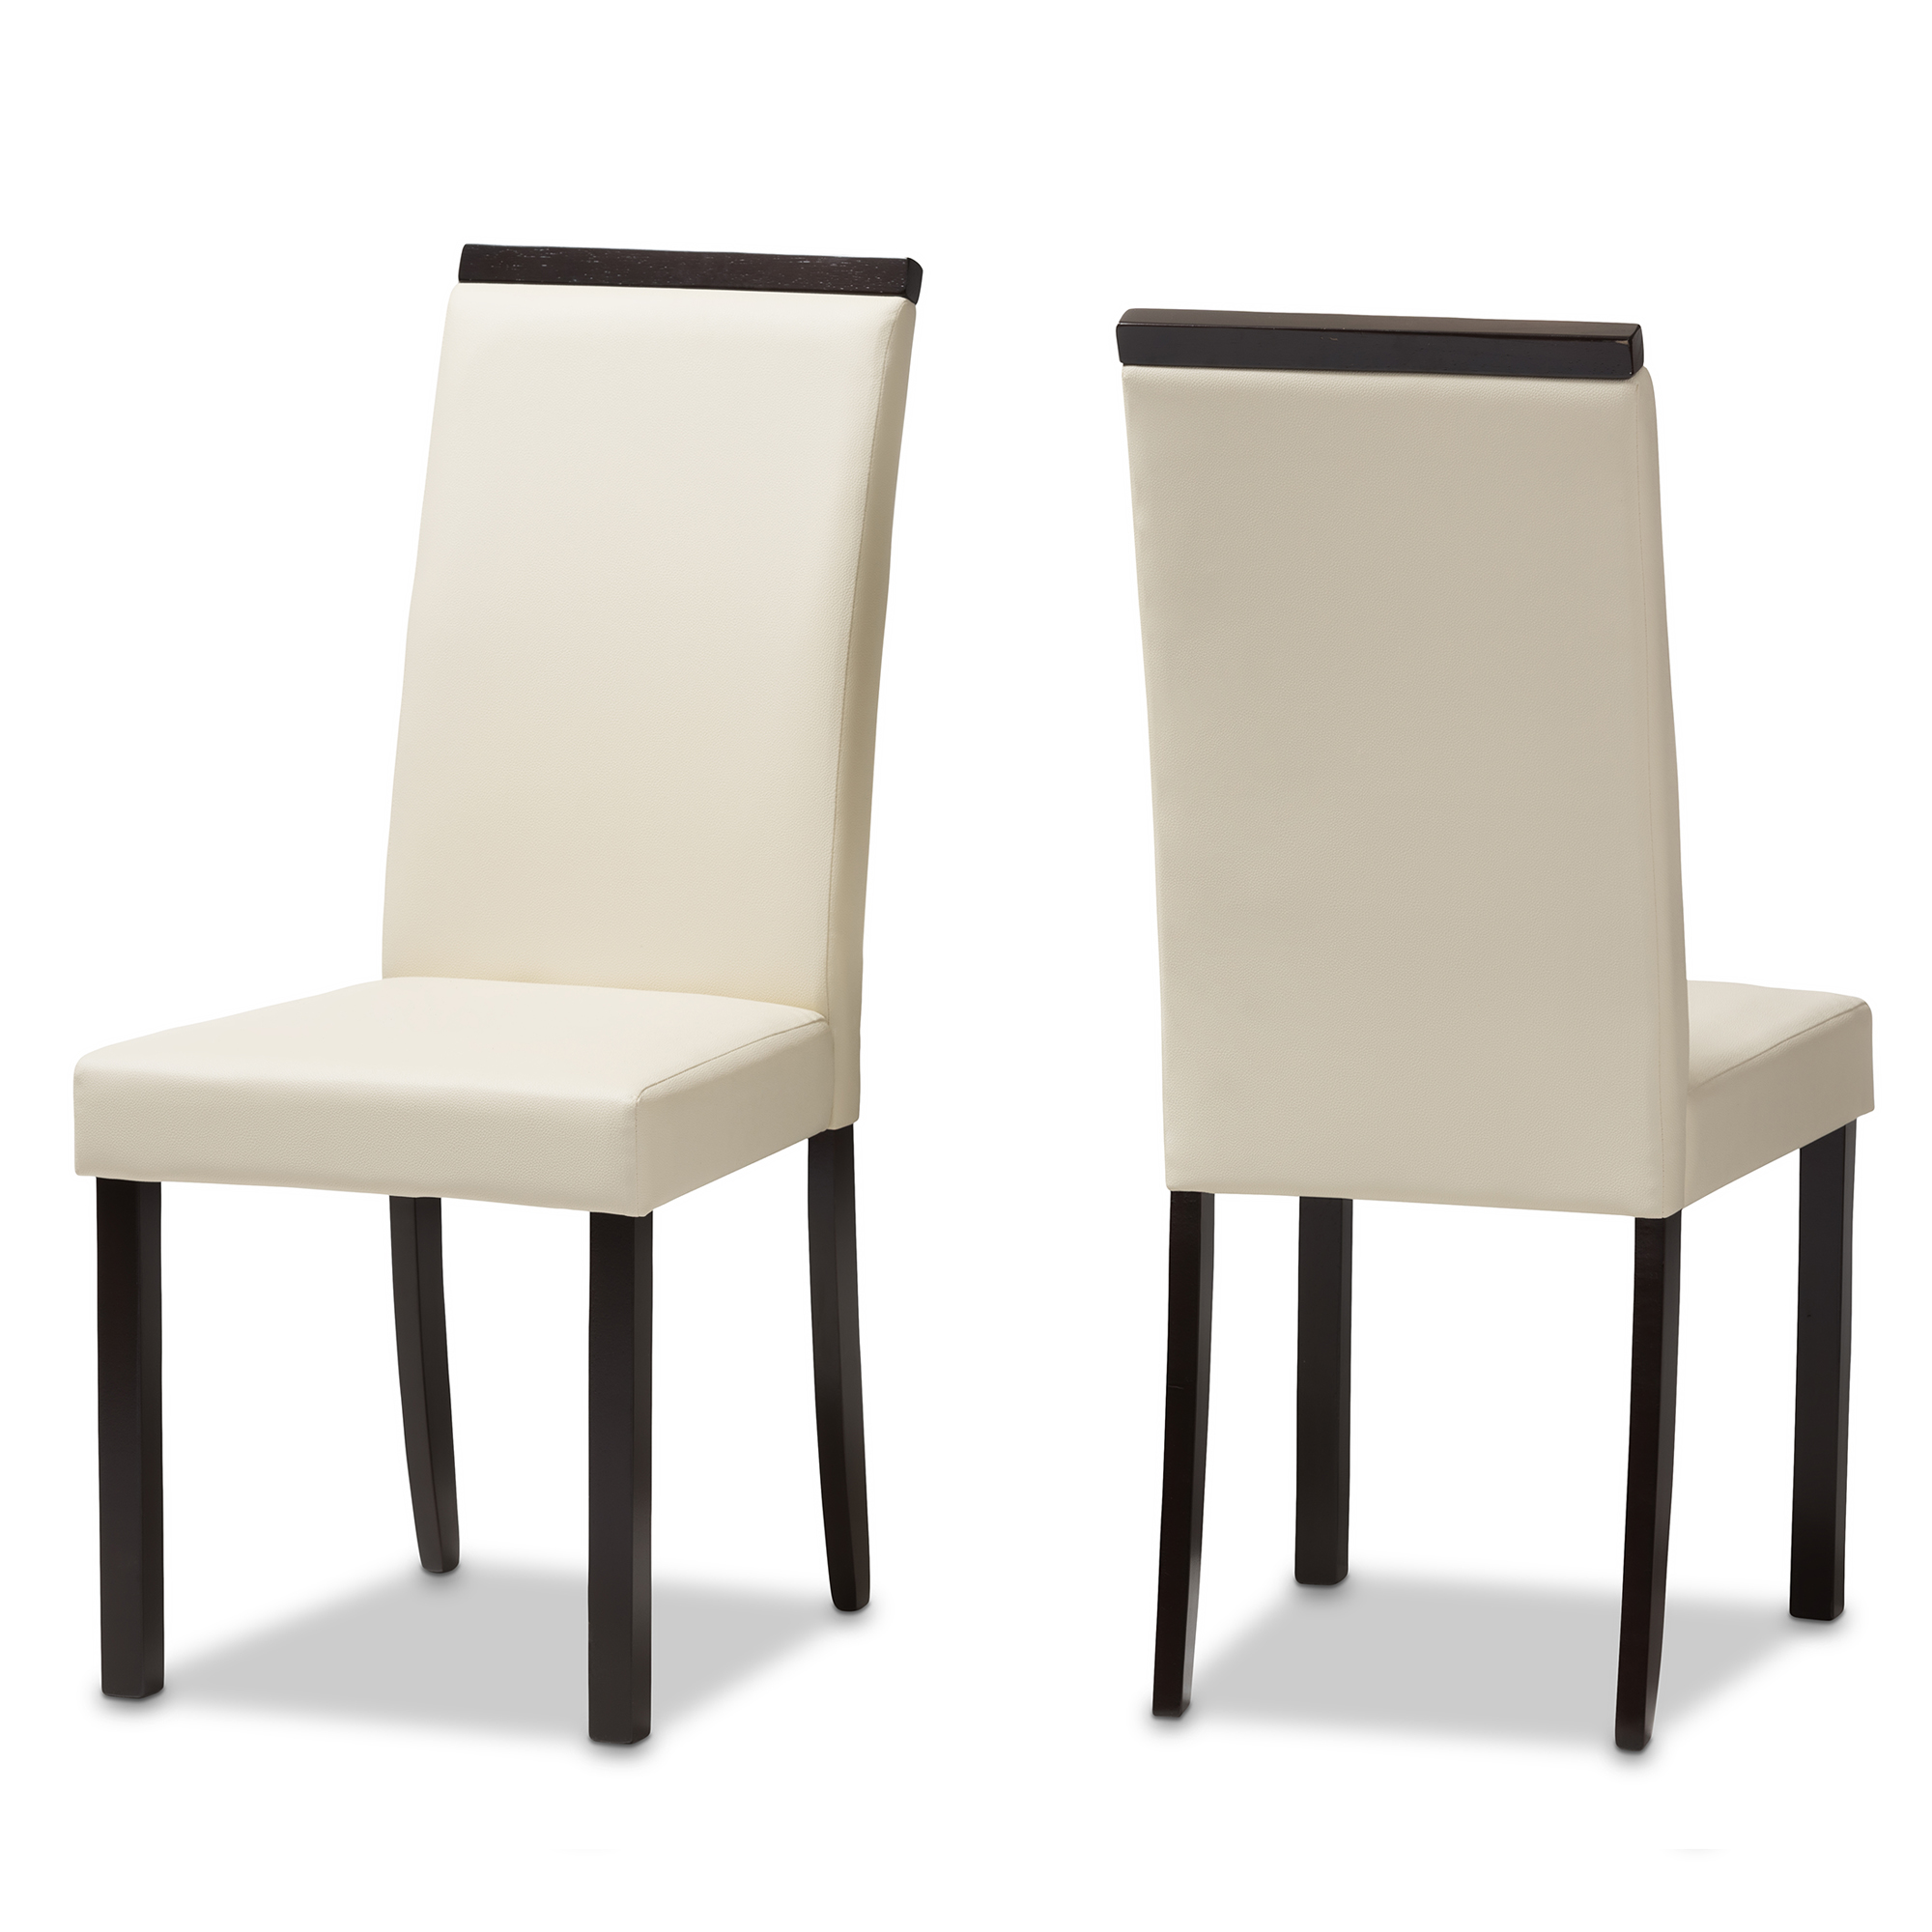 baxton studio modern leather accent chair windsor dining chairs for sale daveney and contemporary cream faux